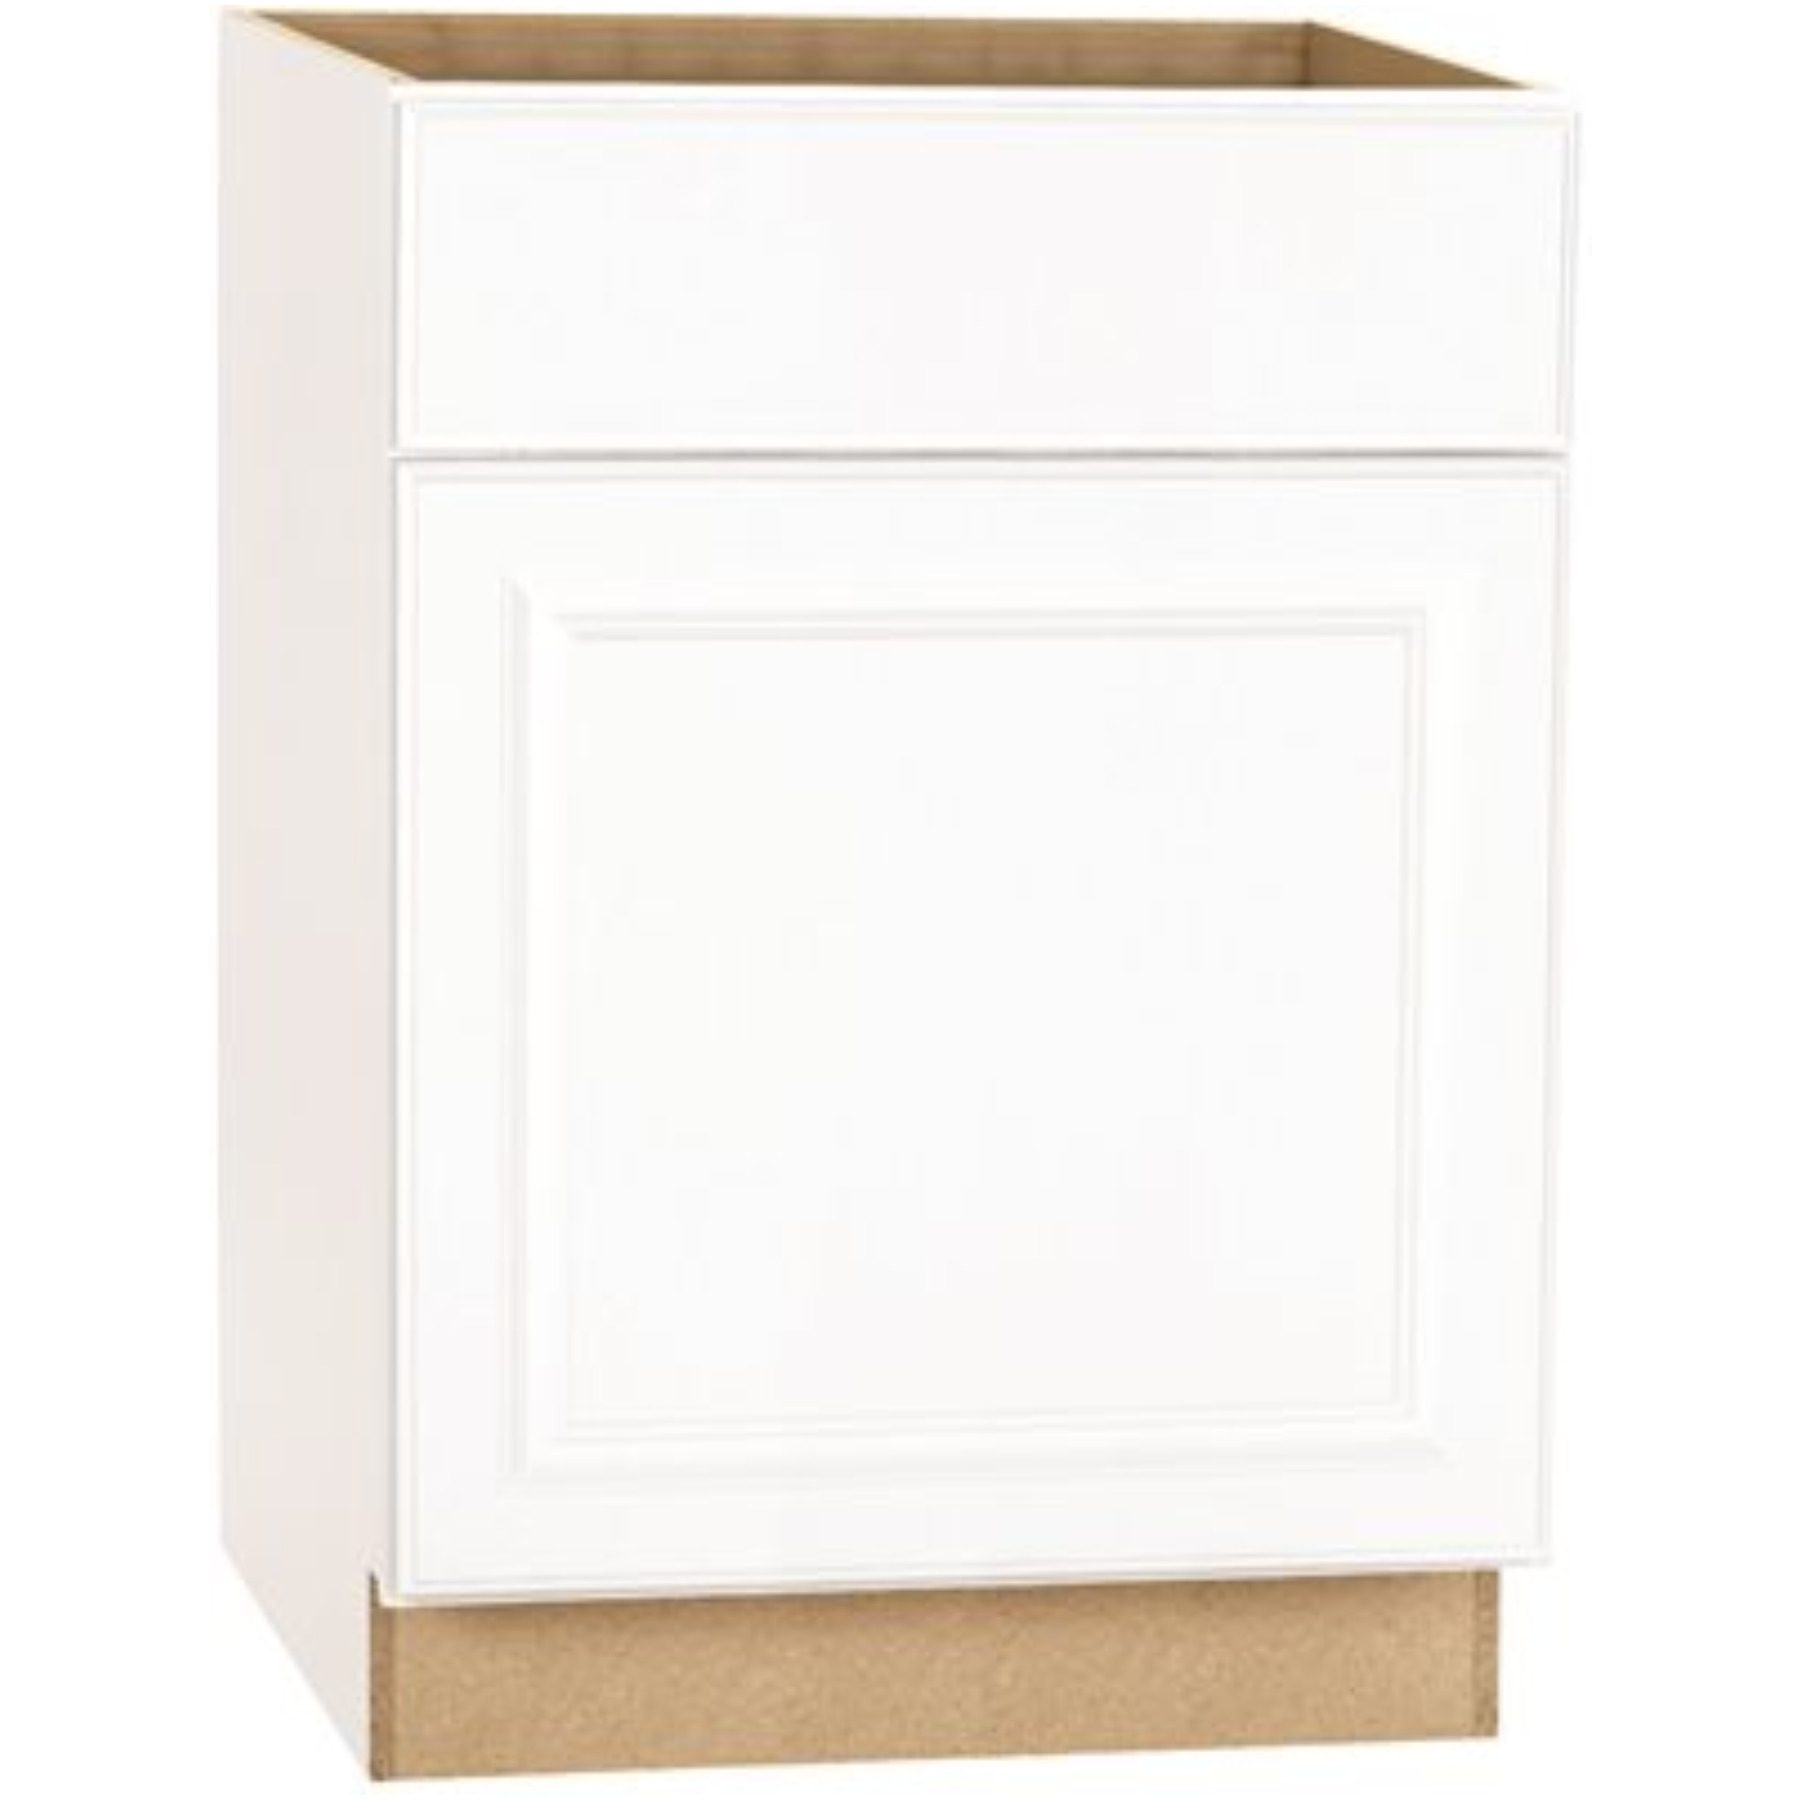 RSI HOME PRODUCTS HAMILTON BASE CABINET, FULLY ASSEMBLED, RAISED PANEL, WHITE, 27X34-1/2X24 IN.